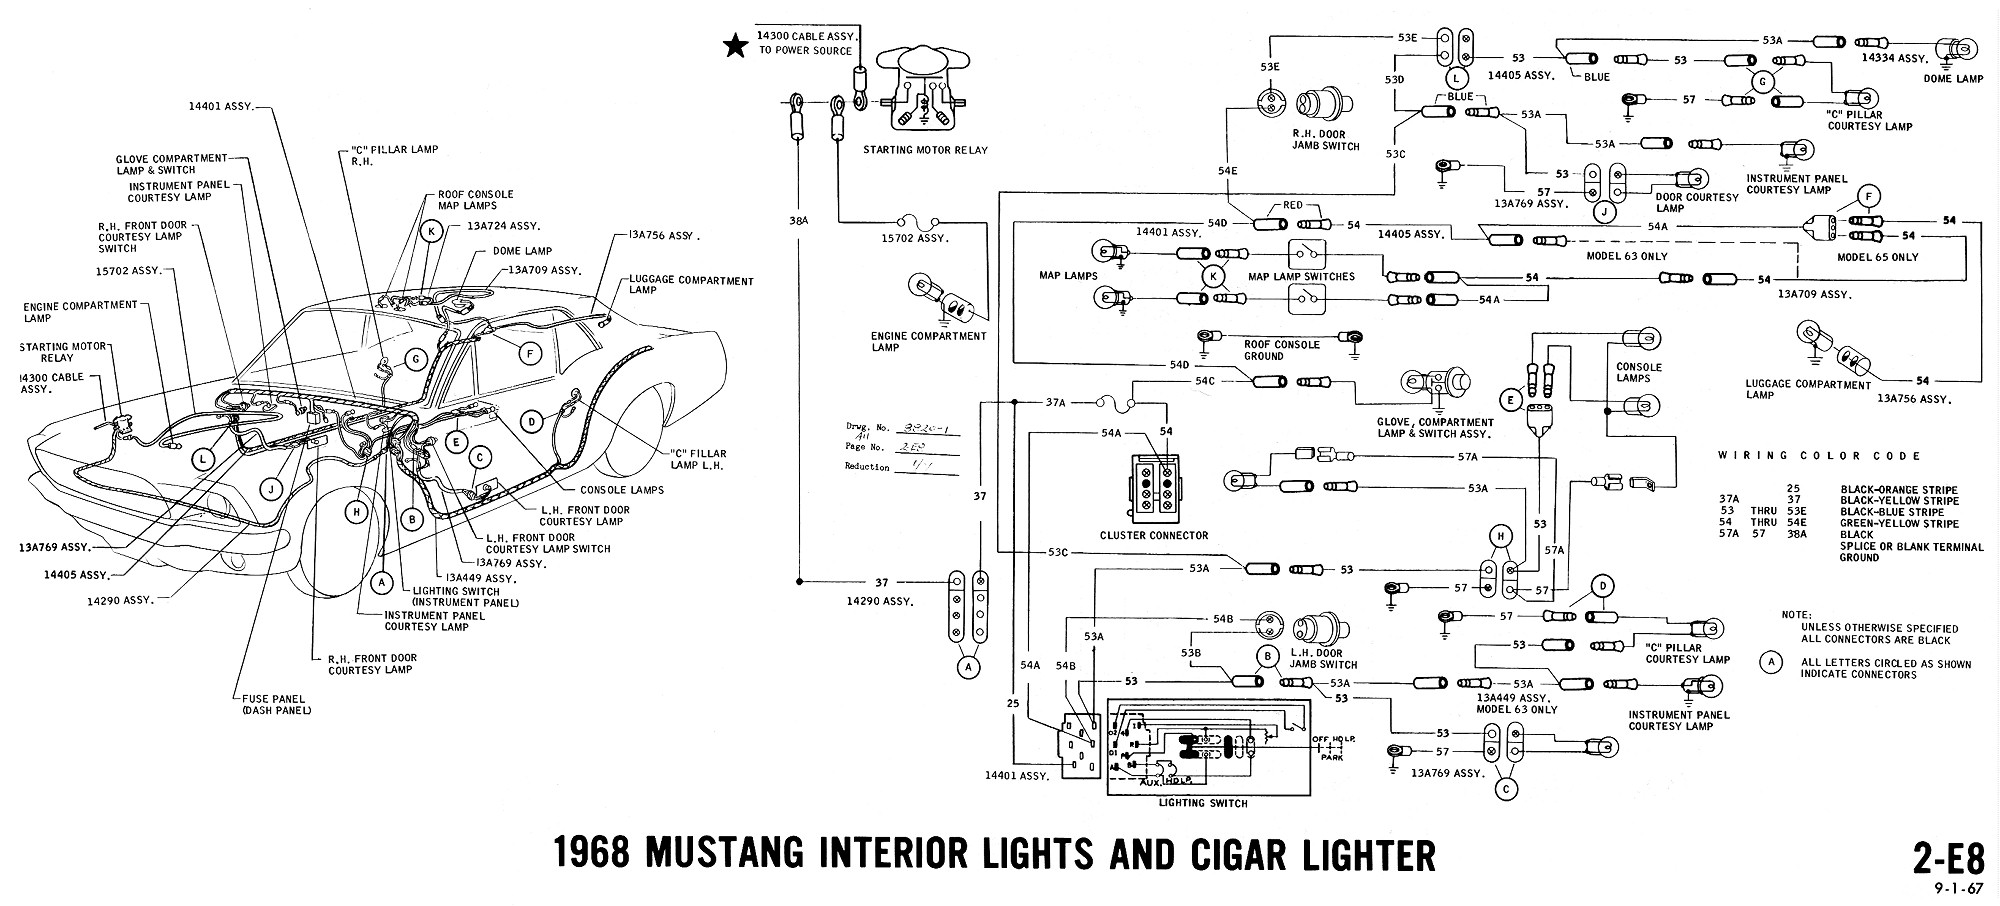 Mustang Wiring Diagram Interior Lights Cigar Lighter on 1966 mustang fuse box diagram